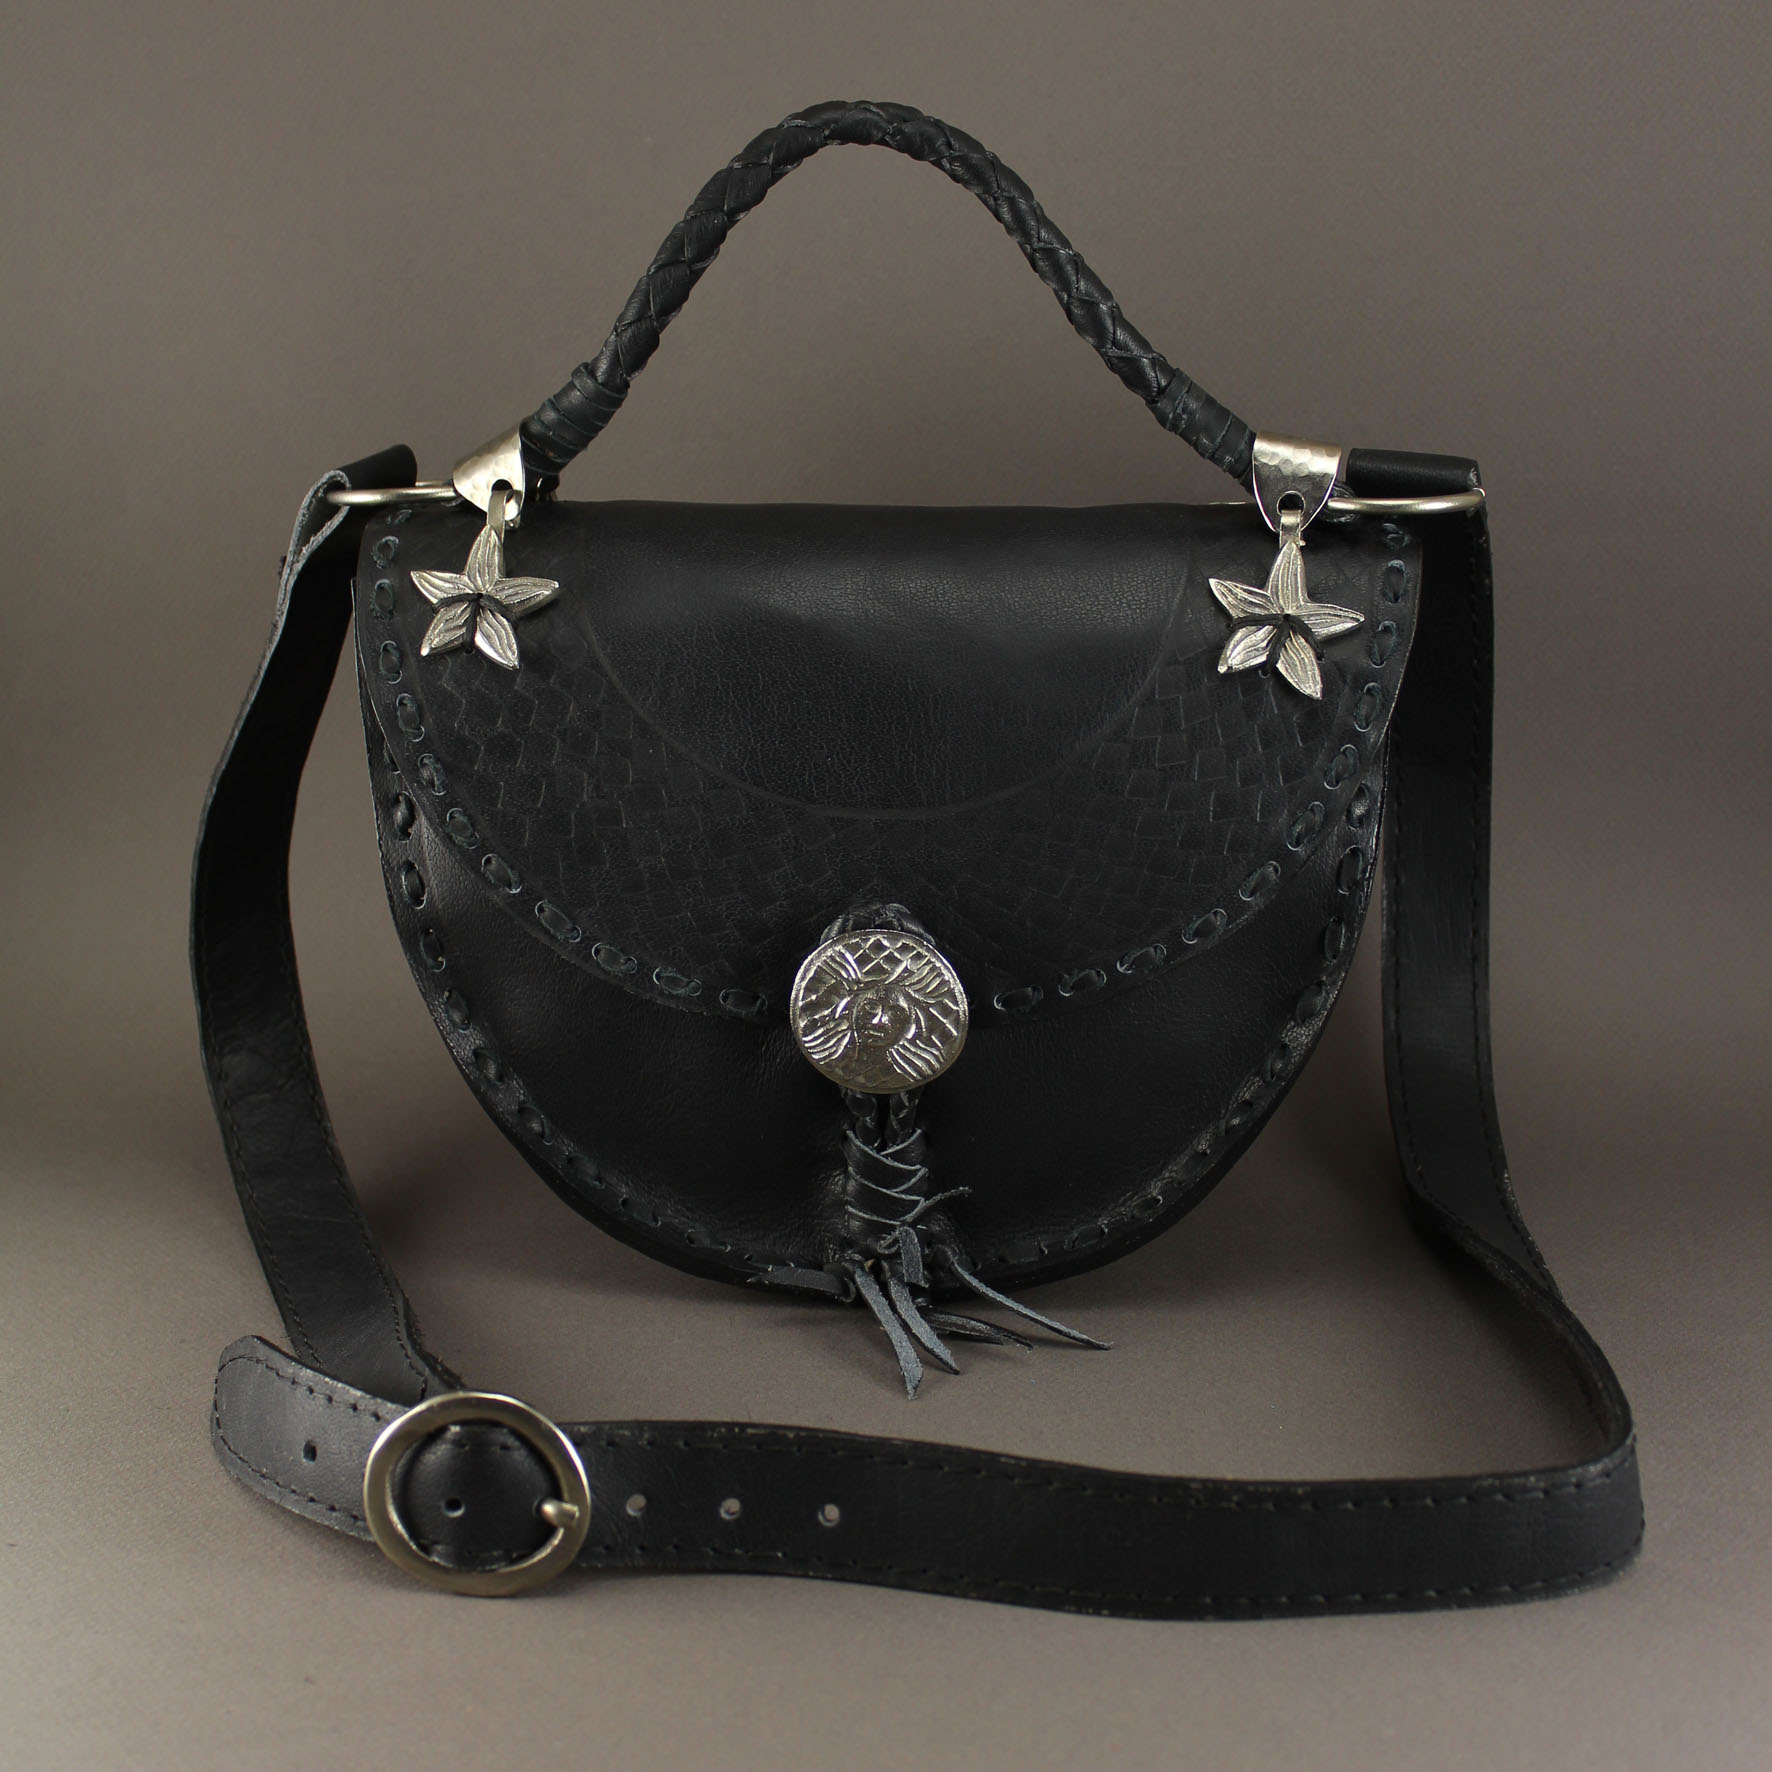 Diamond shaped Medusa bag